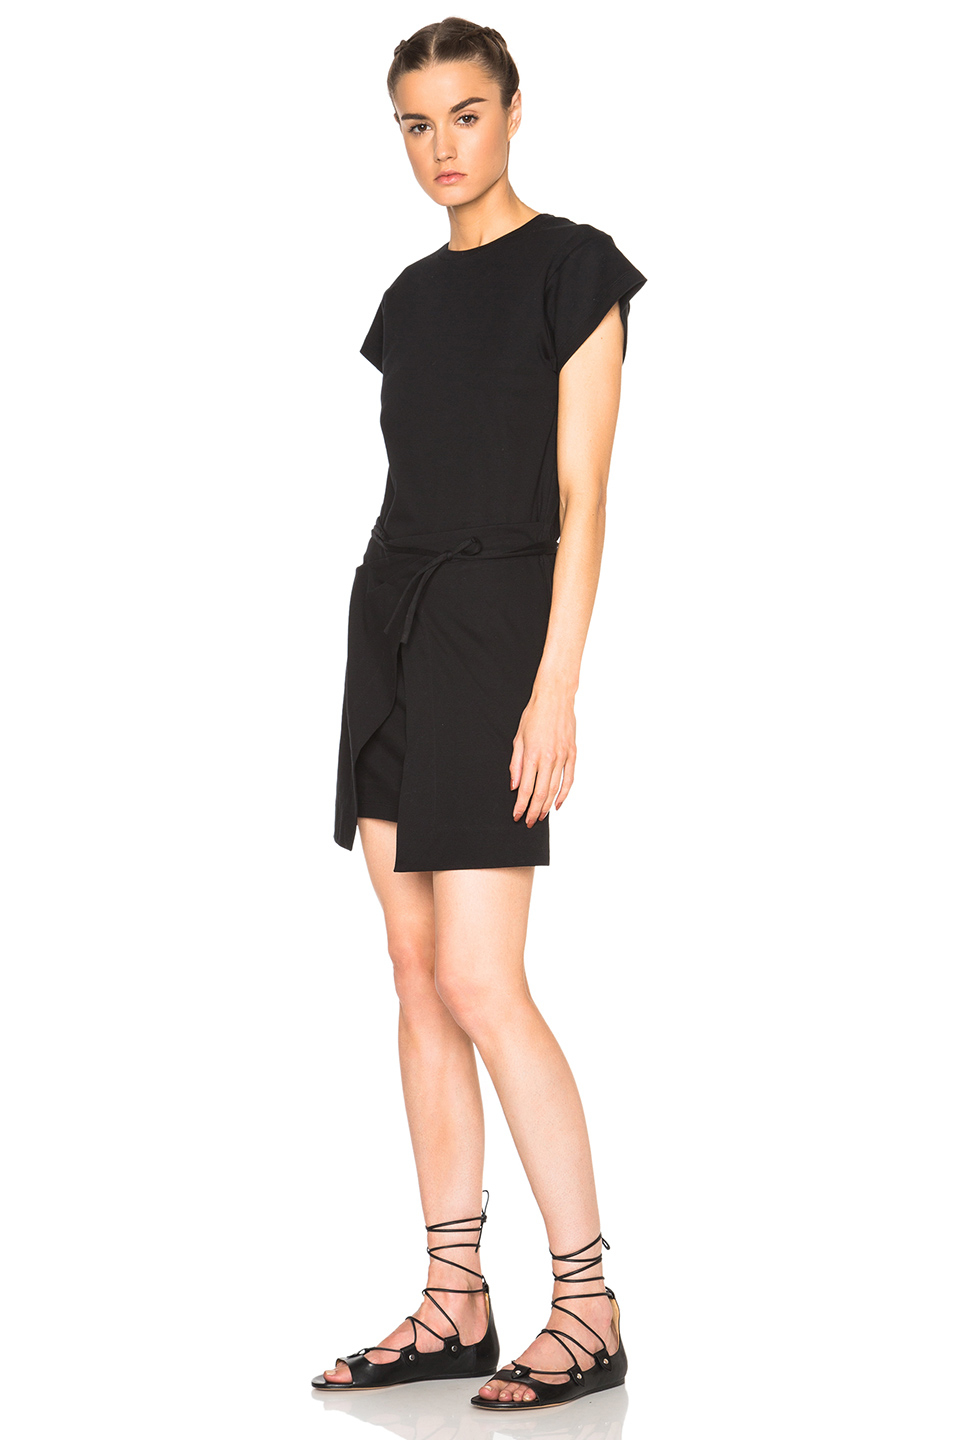 Isabel marant senga chic tee shirt dress in black lyst for Isabel marant t shirt sale